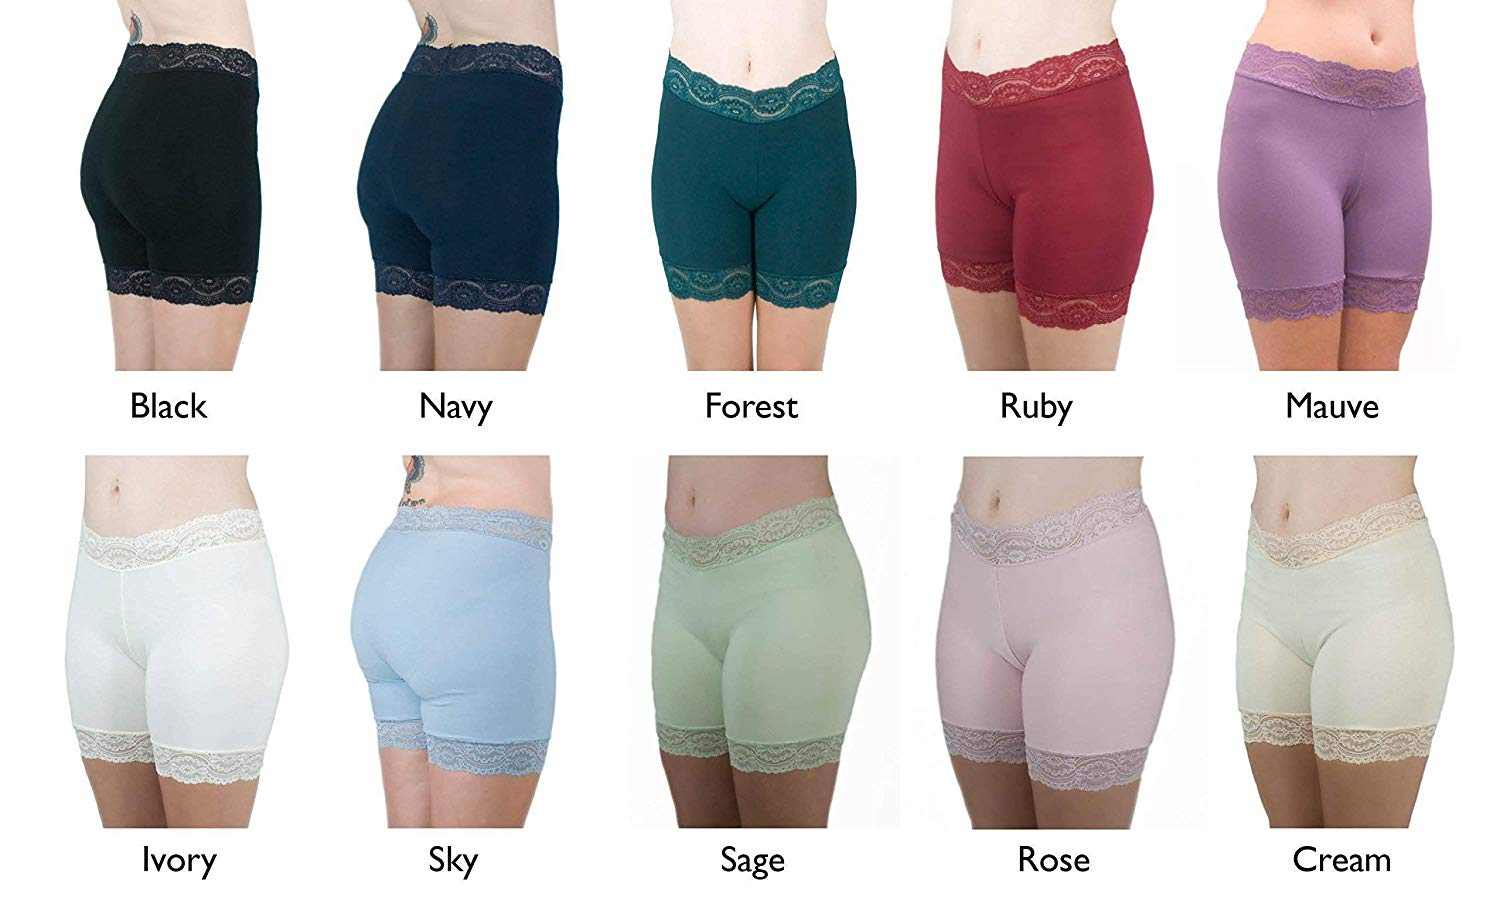 ce16b30869d8 Get Quotations · Anti Chafe Shorties Cotton Lace Bloomers Lace Trimmed  Biker Shorts